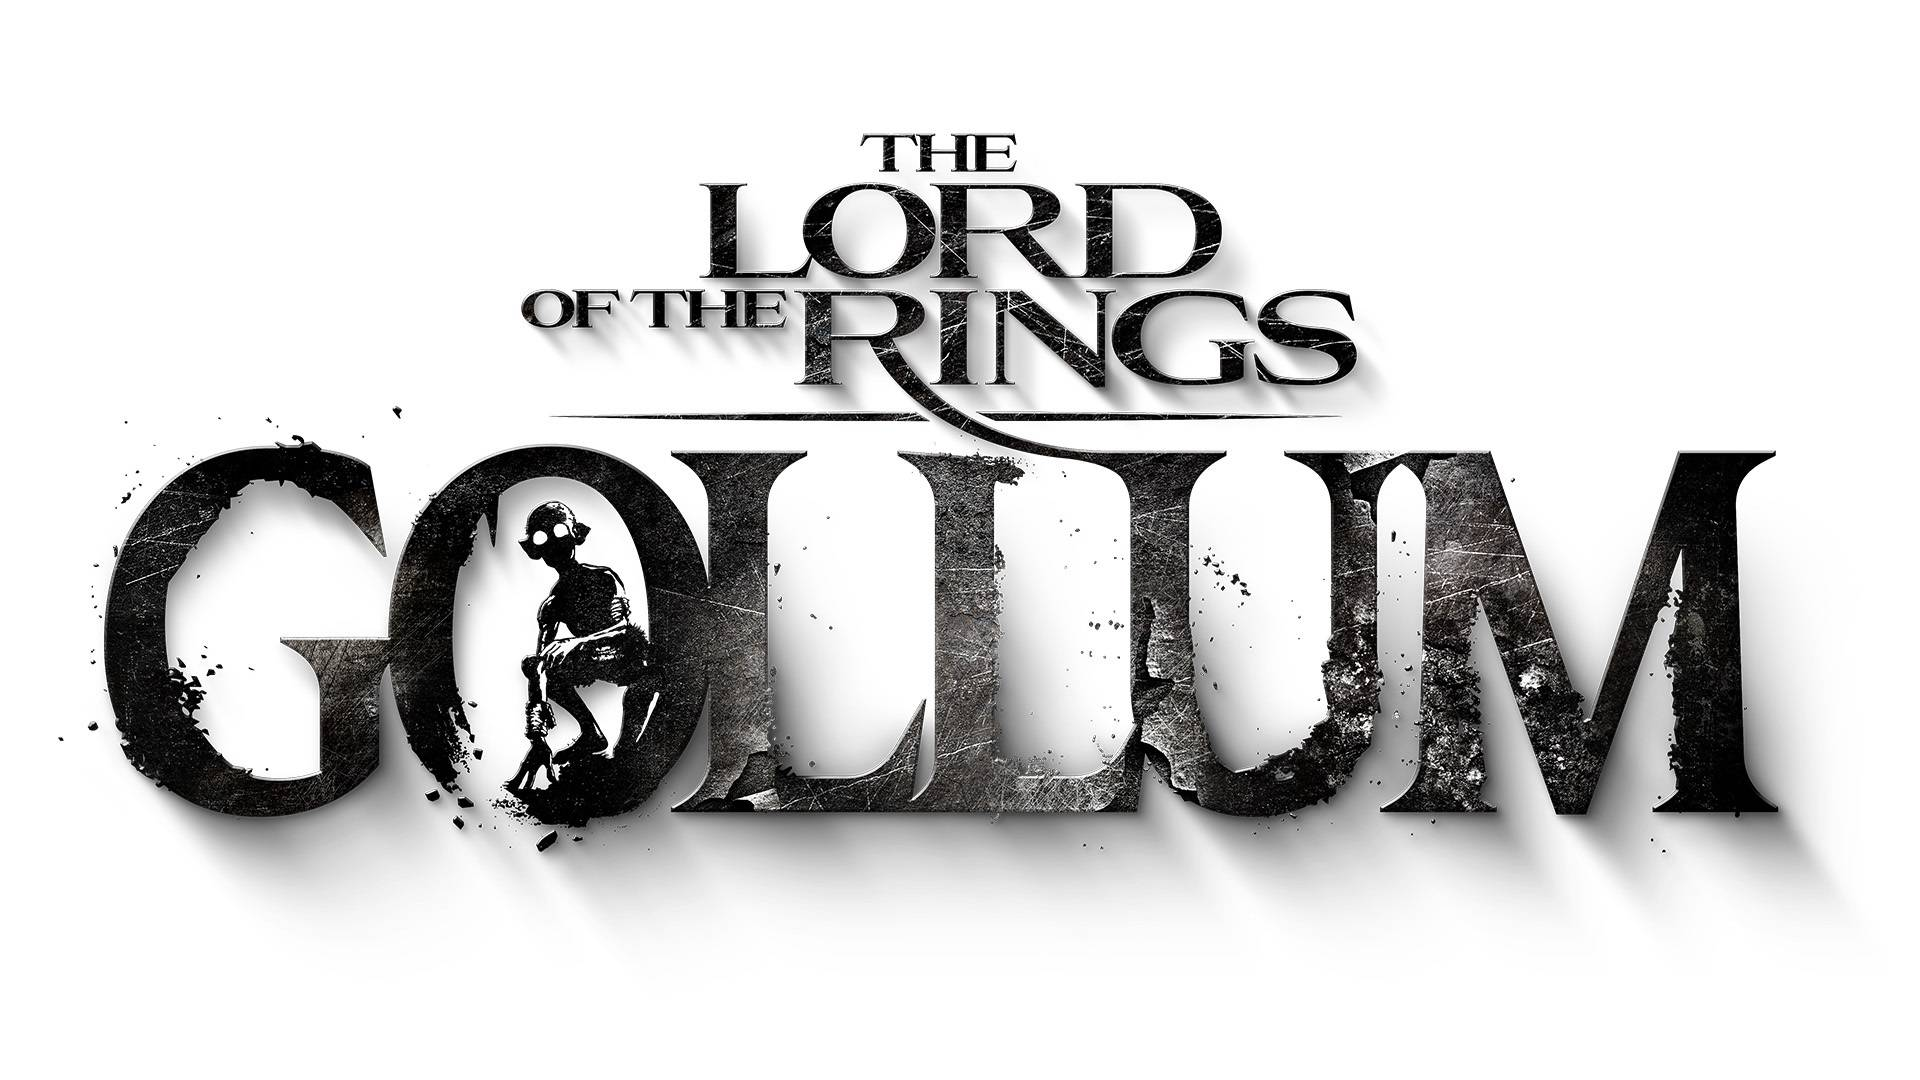 The Lord of the Ring - Gollum